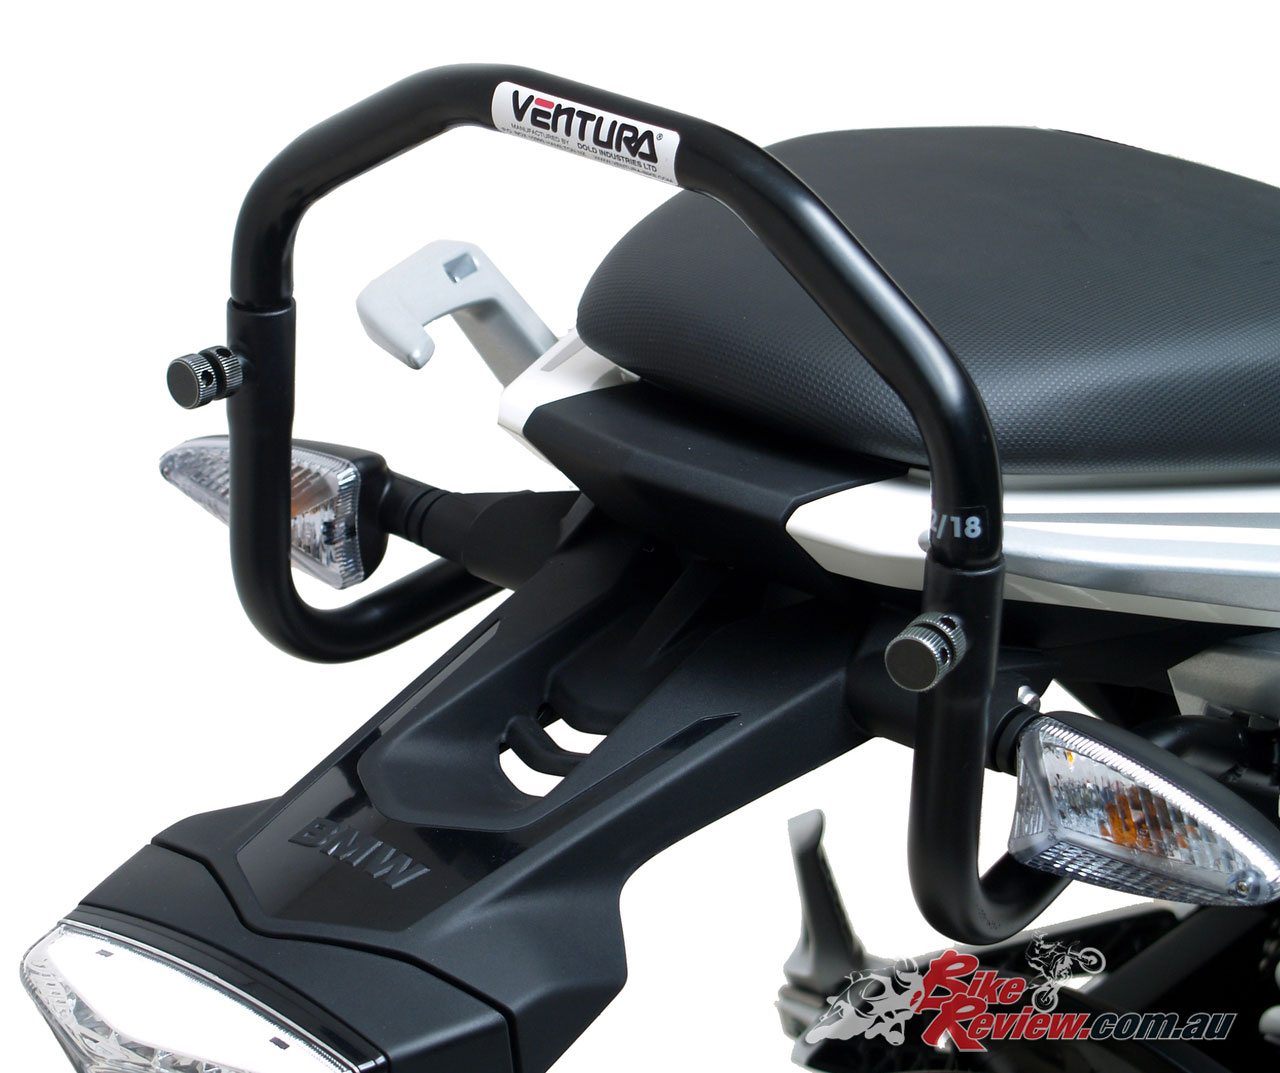 New Product Ventura Systems For Bmw G 310 R Bike Review